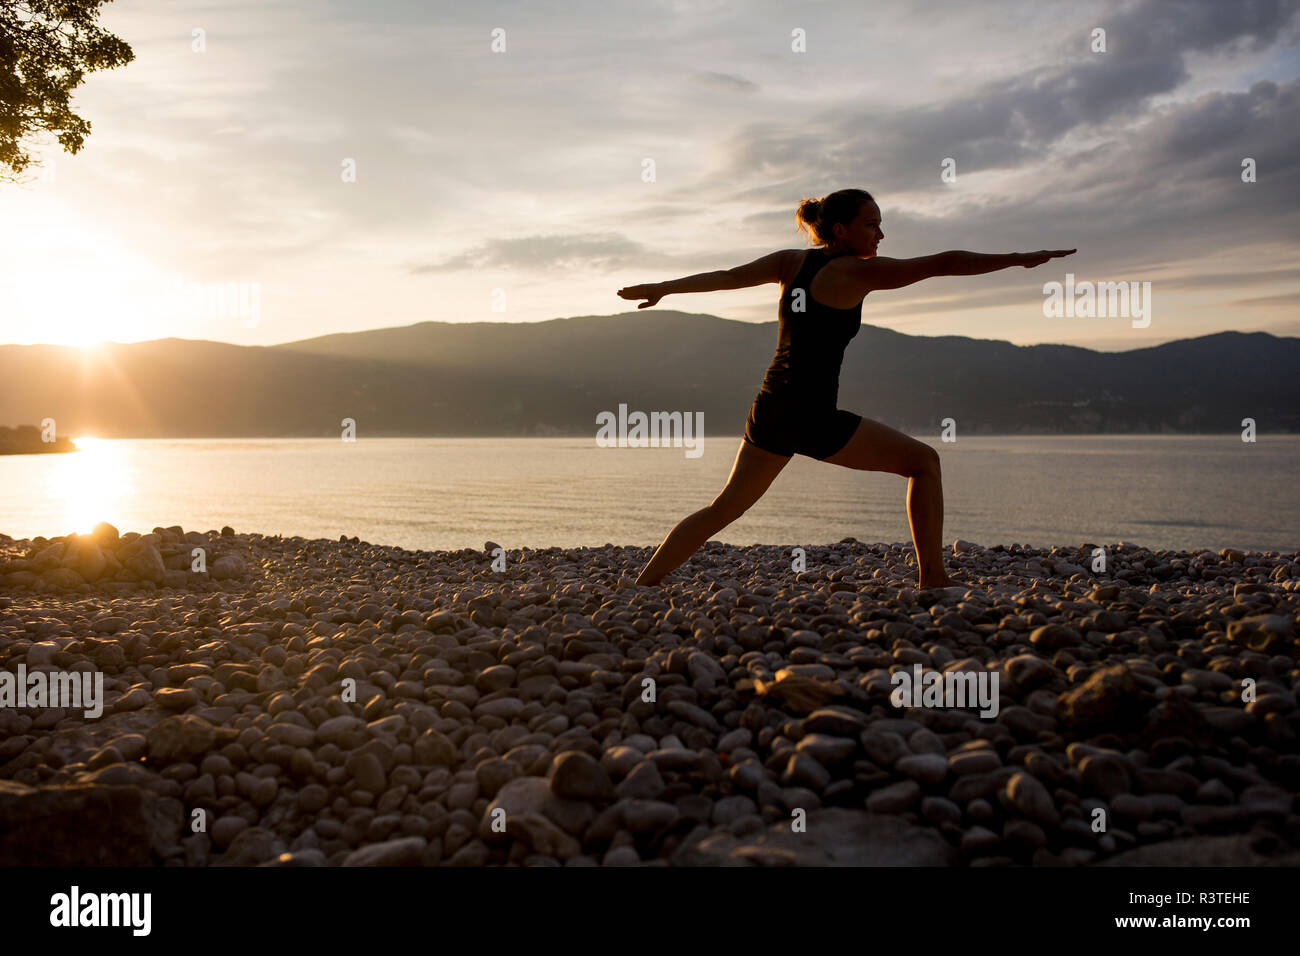 Young woman doing yoga at the stony beach at sunset, Warrior pose - Stock Image